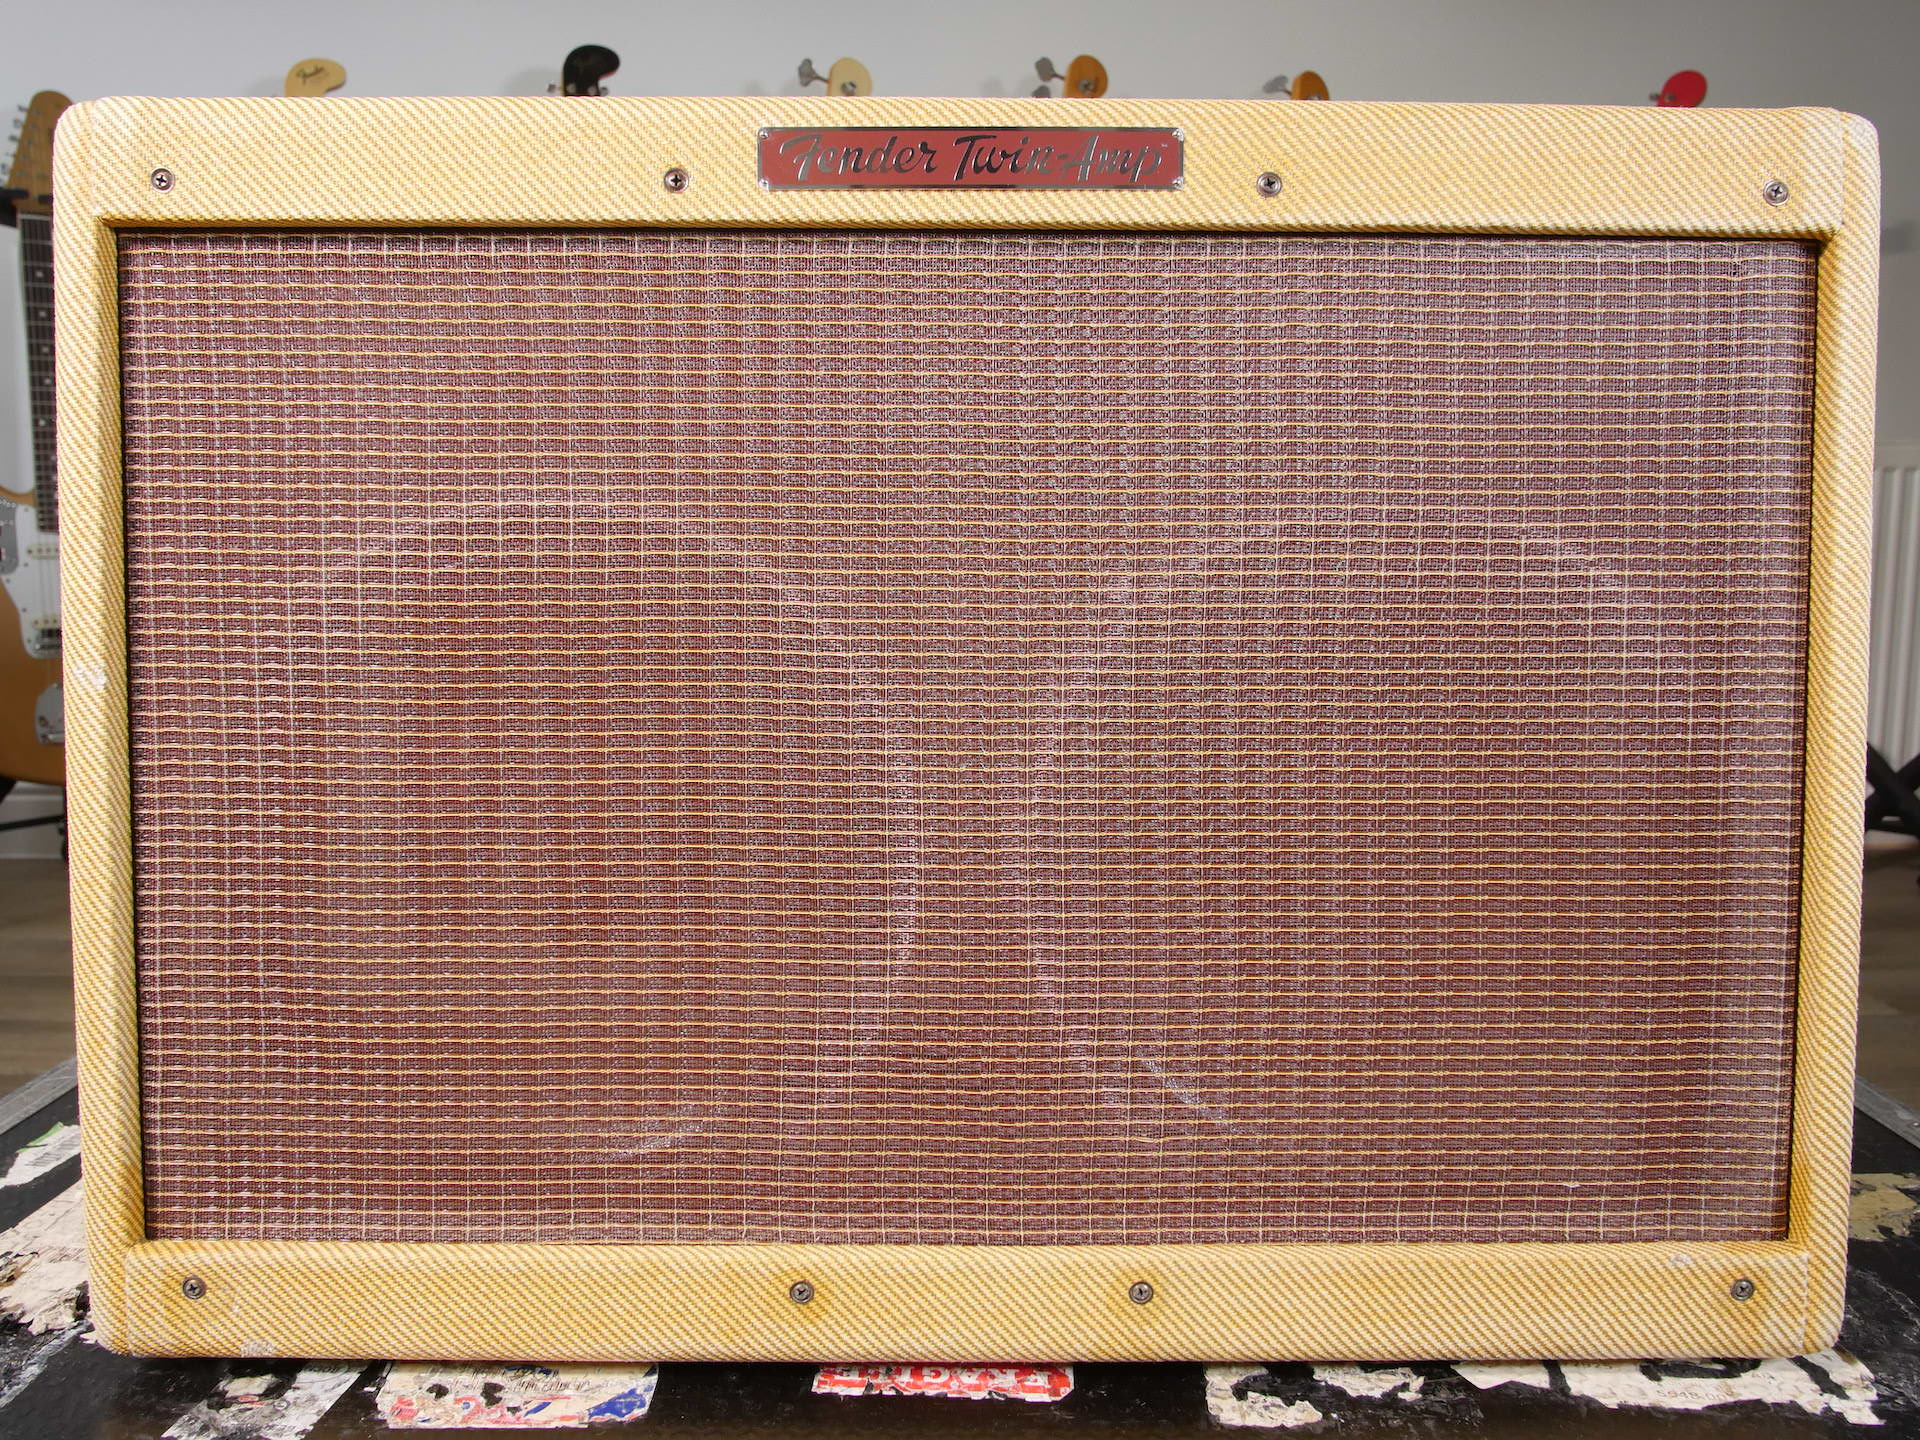 2018 '59 Fender High Powered Twin Amp Joe Bonamassa Edition